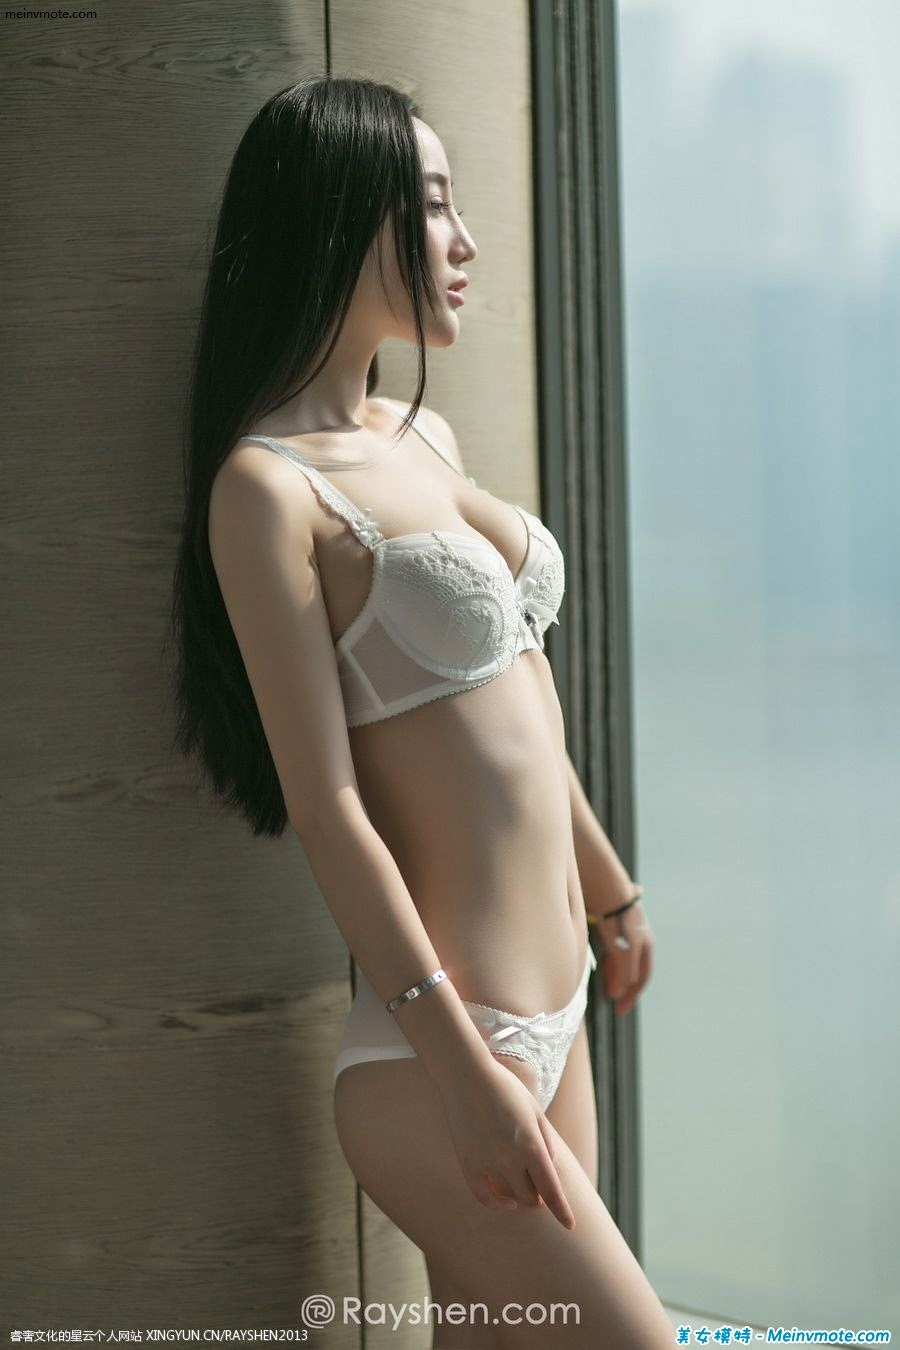 Zhang Wanxin window overlooking the beautiful lace underwear